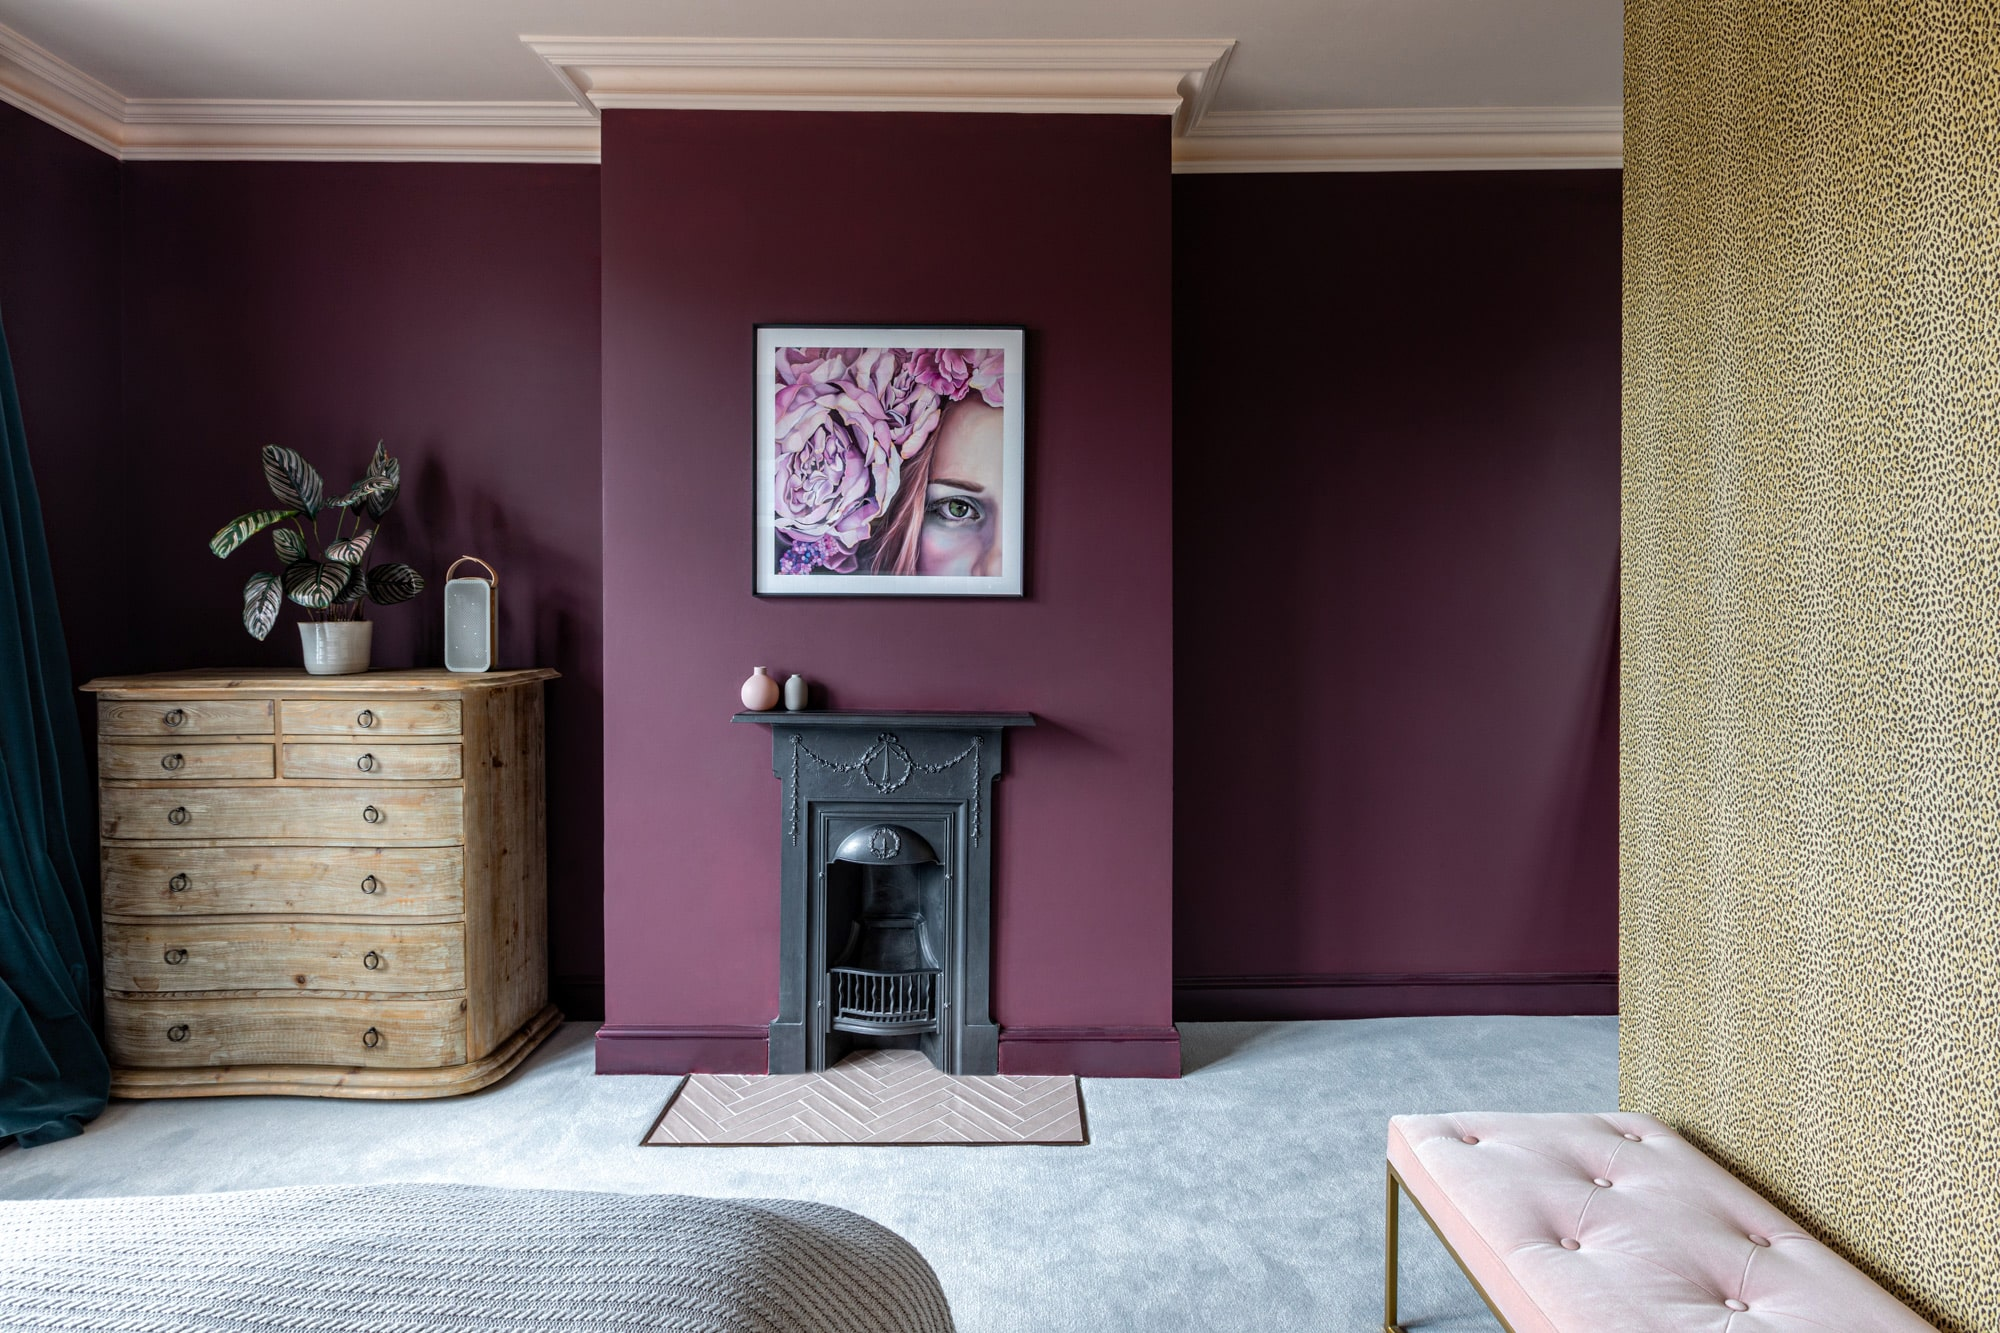 Interior design photography: bedroom with dark burgundy walls;  art with a girl in a flower band; fireplace; teal velvet curtains; bed; wooden chest of drawers; animal print feature wall